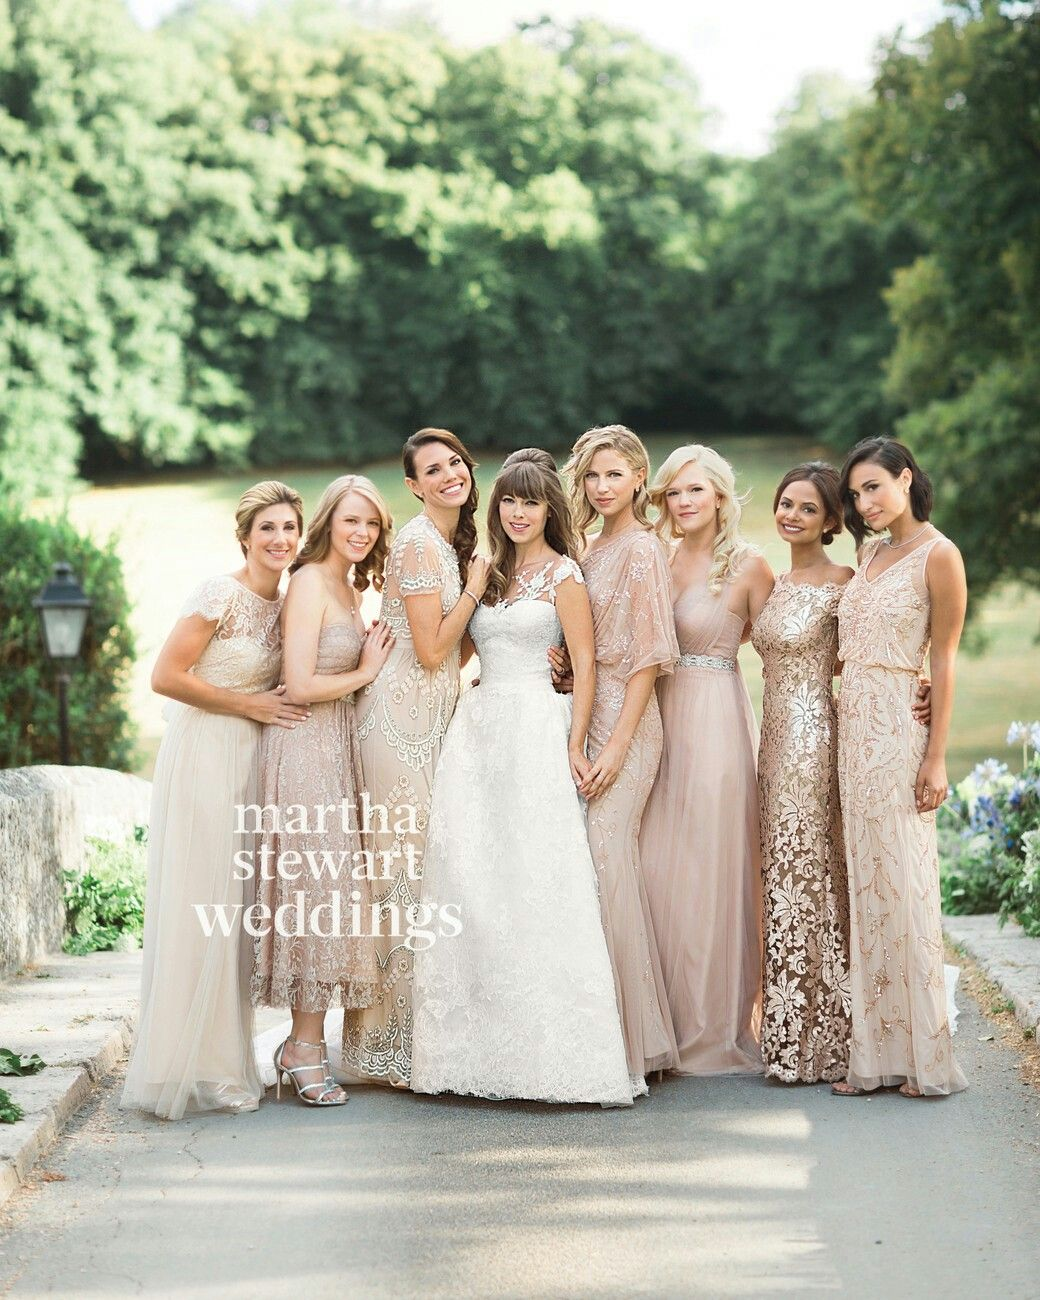 Pin by bethany pollock on finally bachmann 2018 pinterest each of the brides attendants wore a different blush or champagne colored bhldn gown ombrellifo Gallery